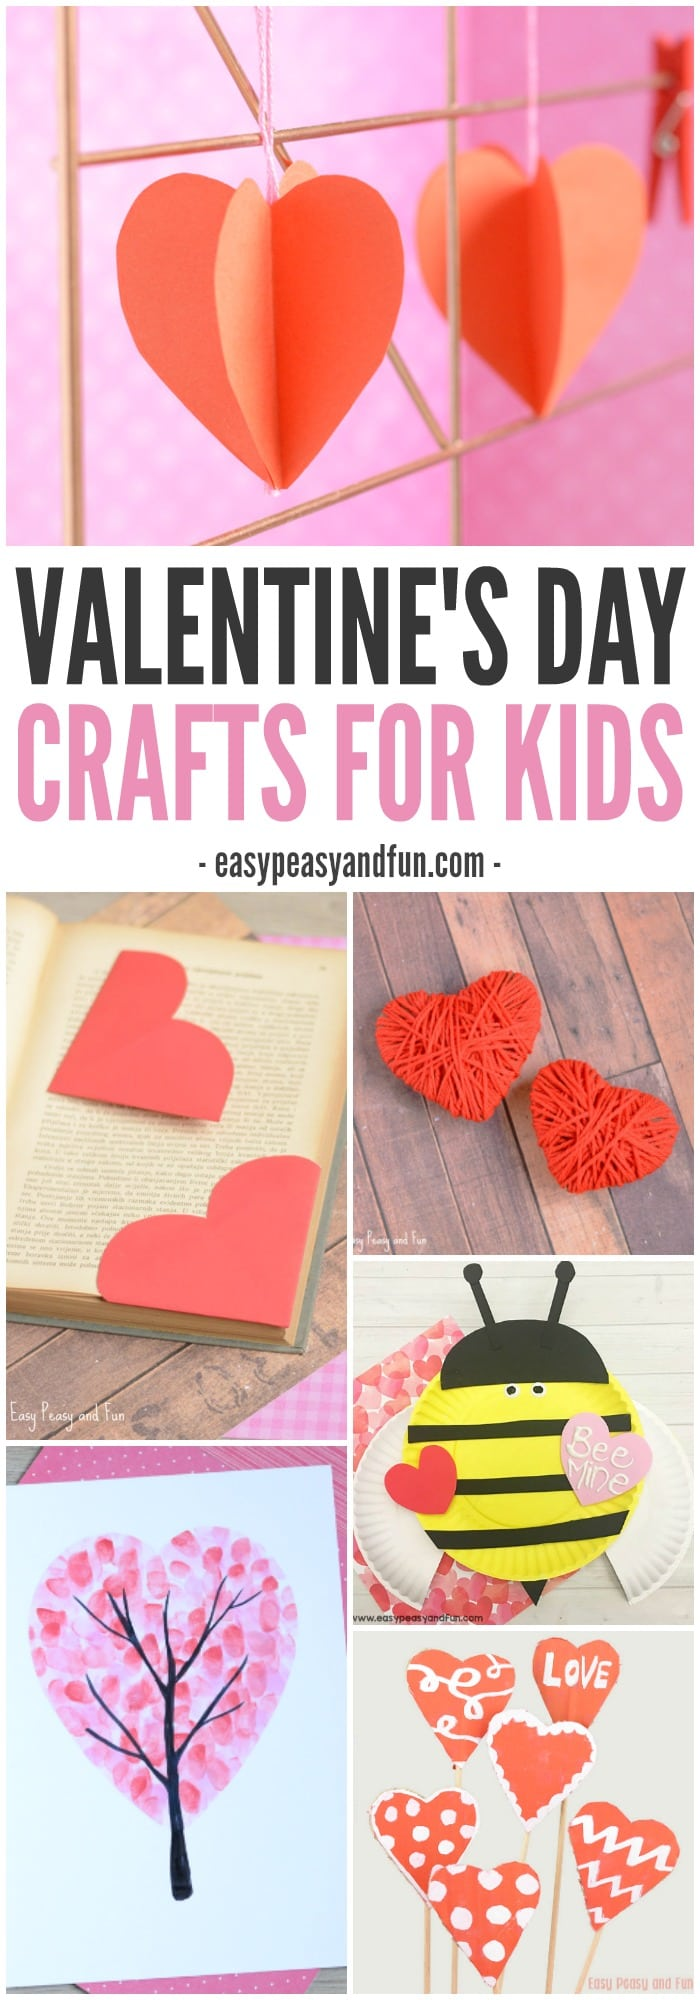 valentines day crafts for